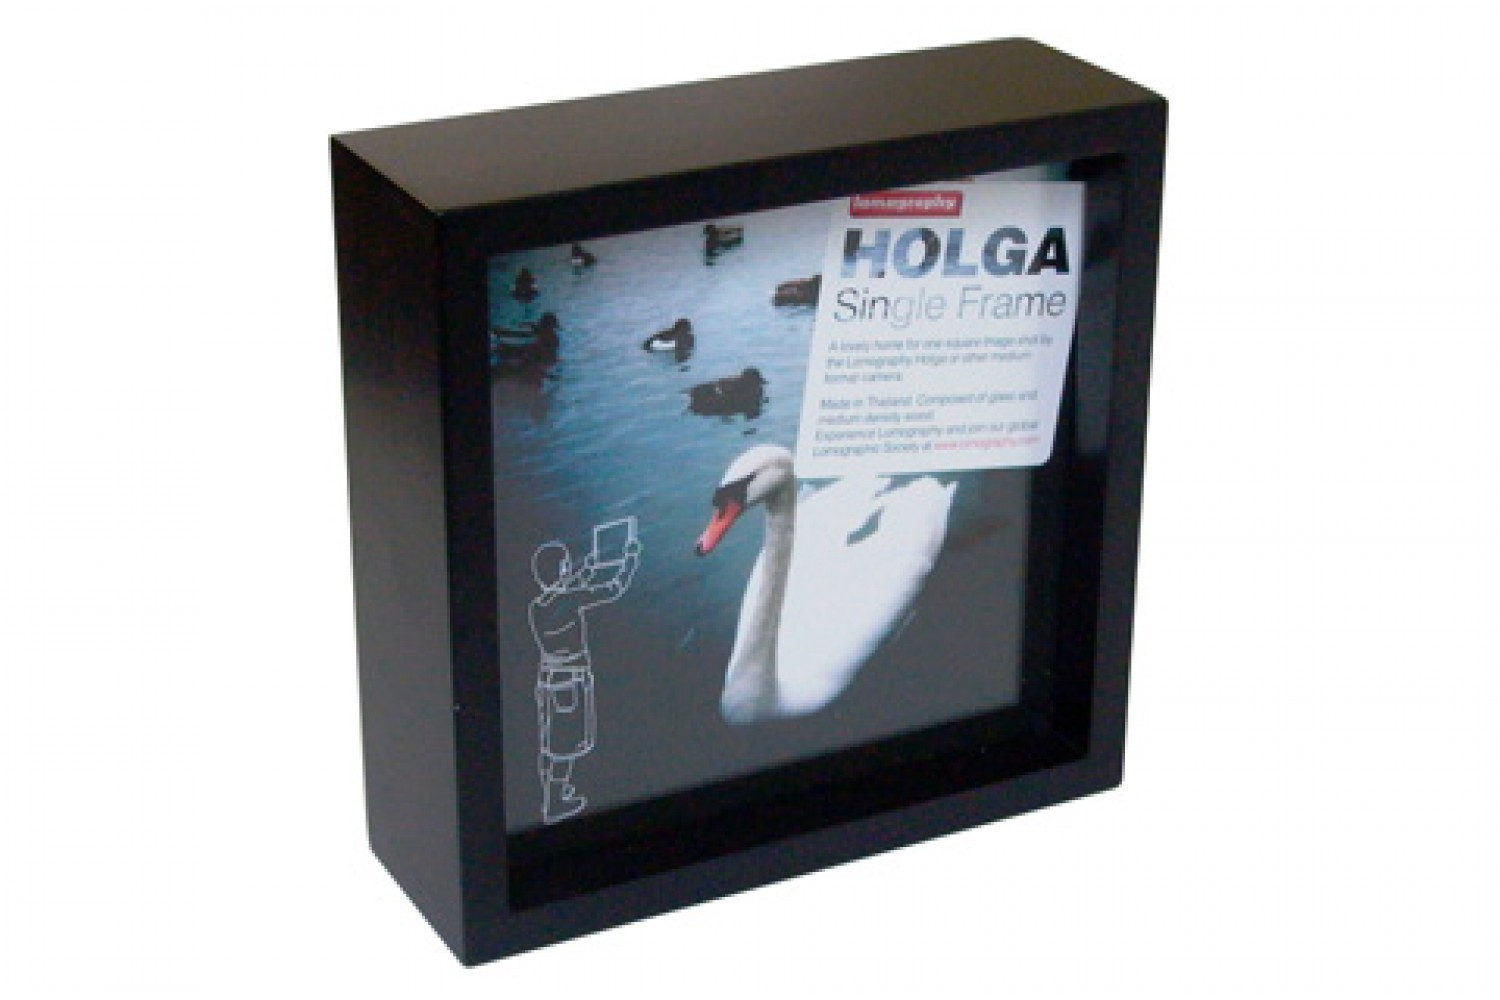 Holga Single Frame